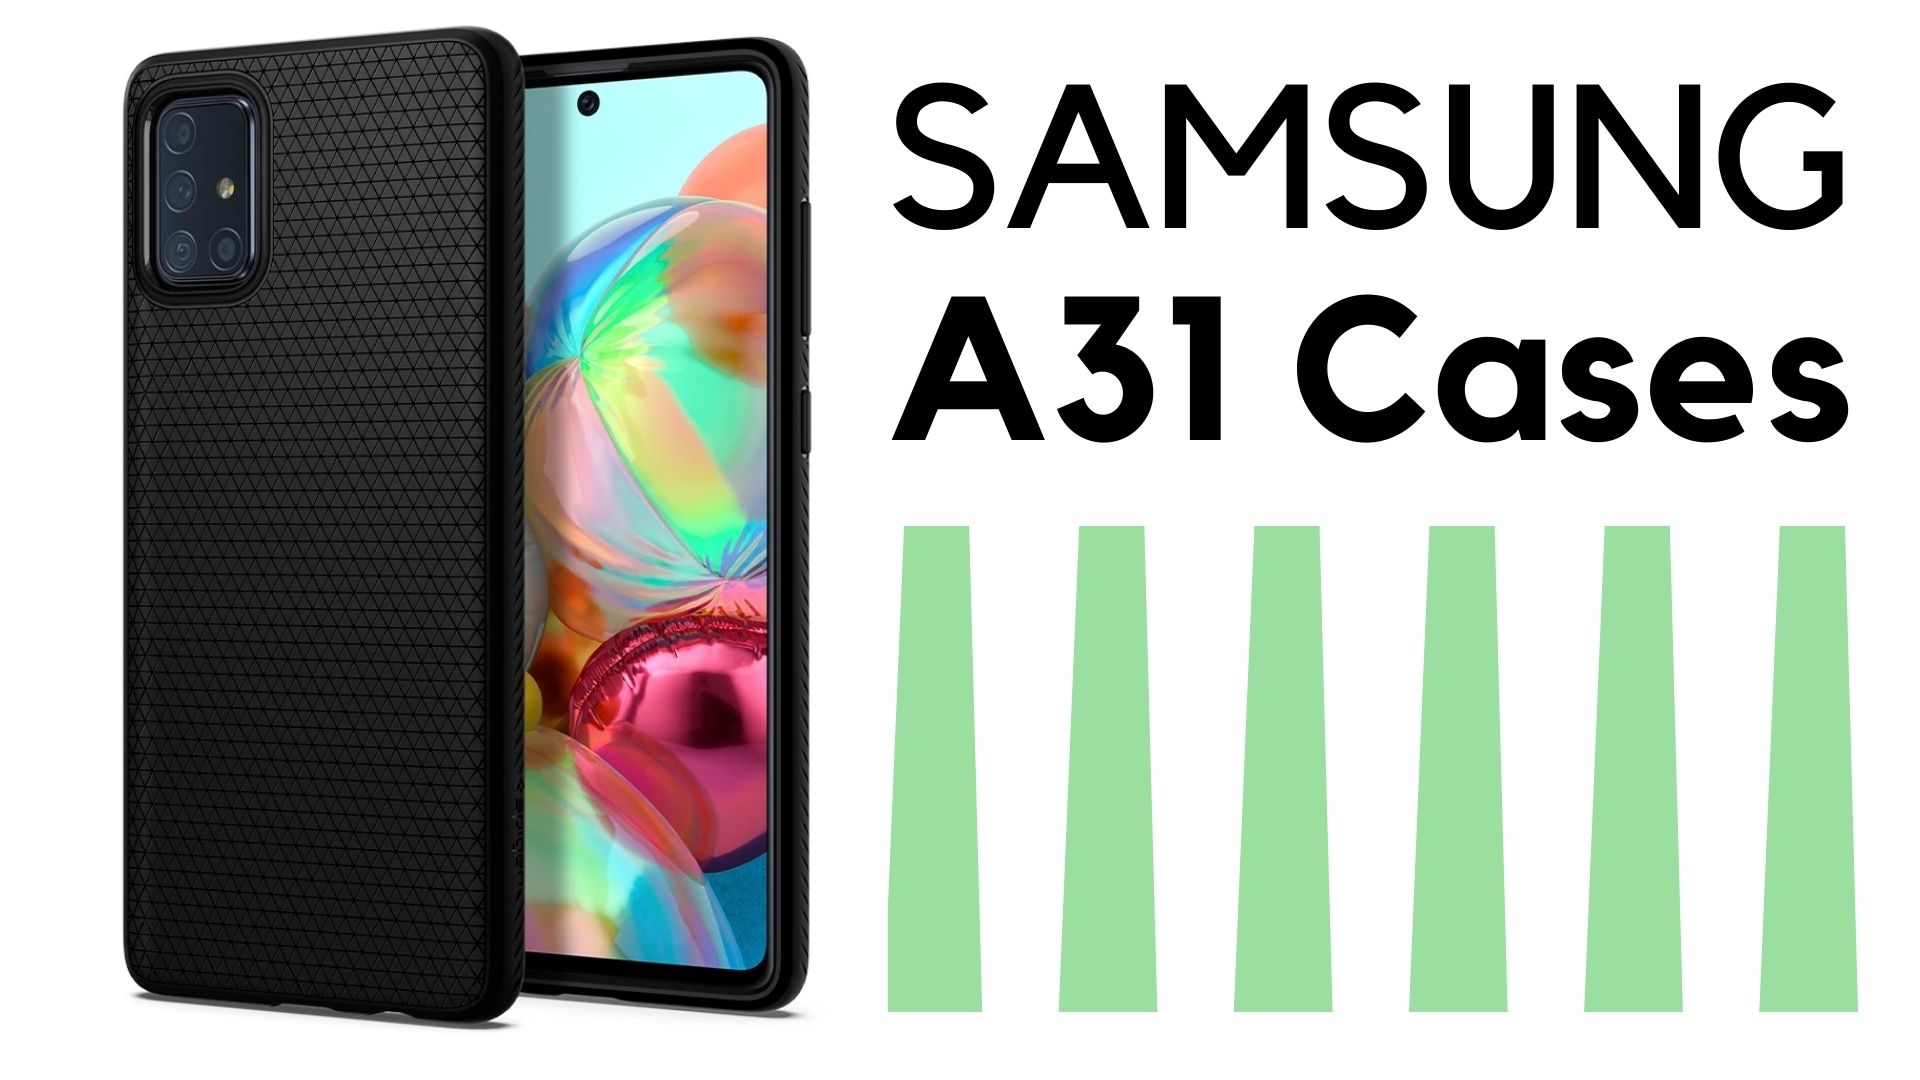 Samsung A31 Cases